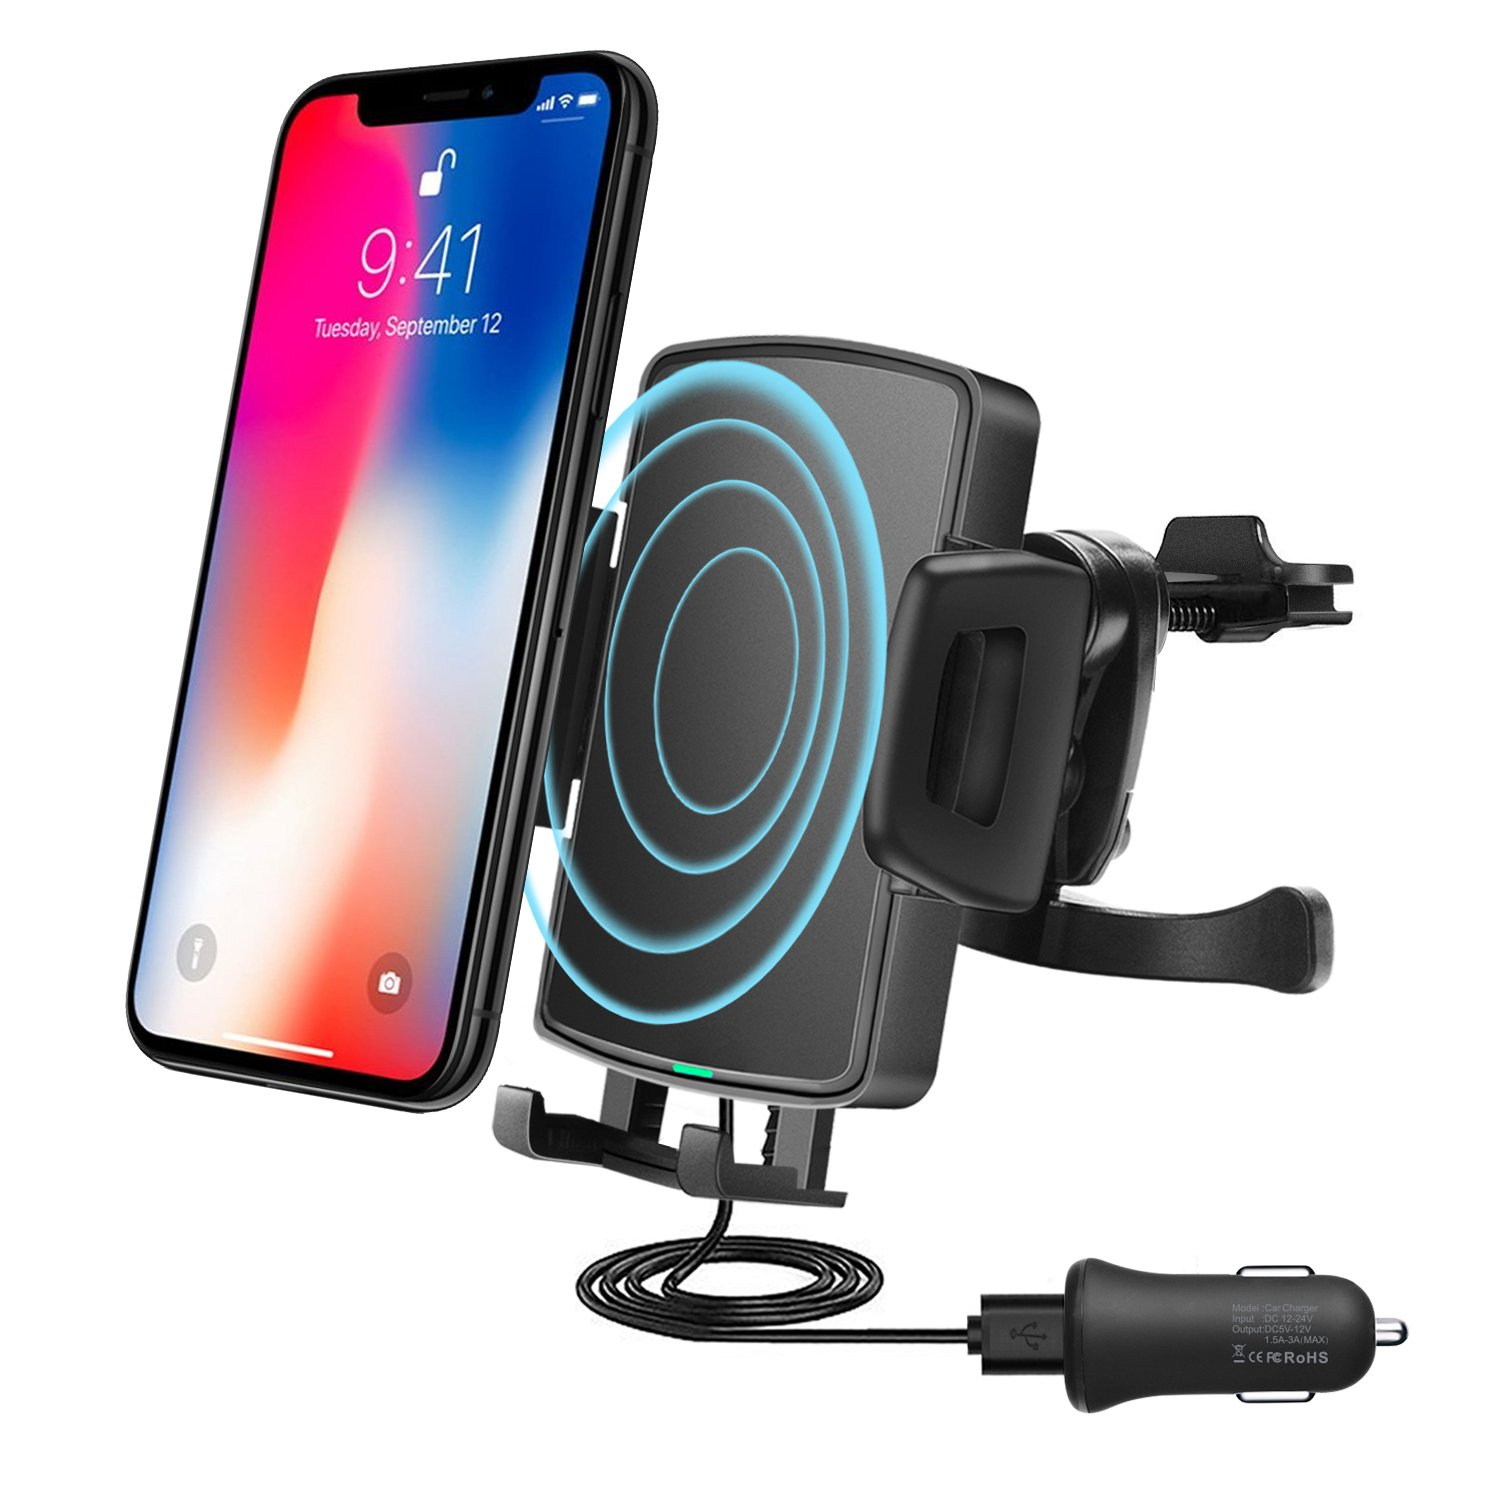 高速ワイヤレス車充電器、qivv Qi Fast 10 W充電車マウントwith Air Vent Phone For SamSung Galaxy s9 /s9 Plus、s8 /s8 Plus、s7、s7 Edge/s6 Edge Plus, Note 8 /5、7.5 W for iPhone X、8 /8プラス B07D286RLG